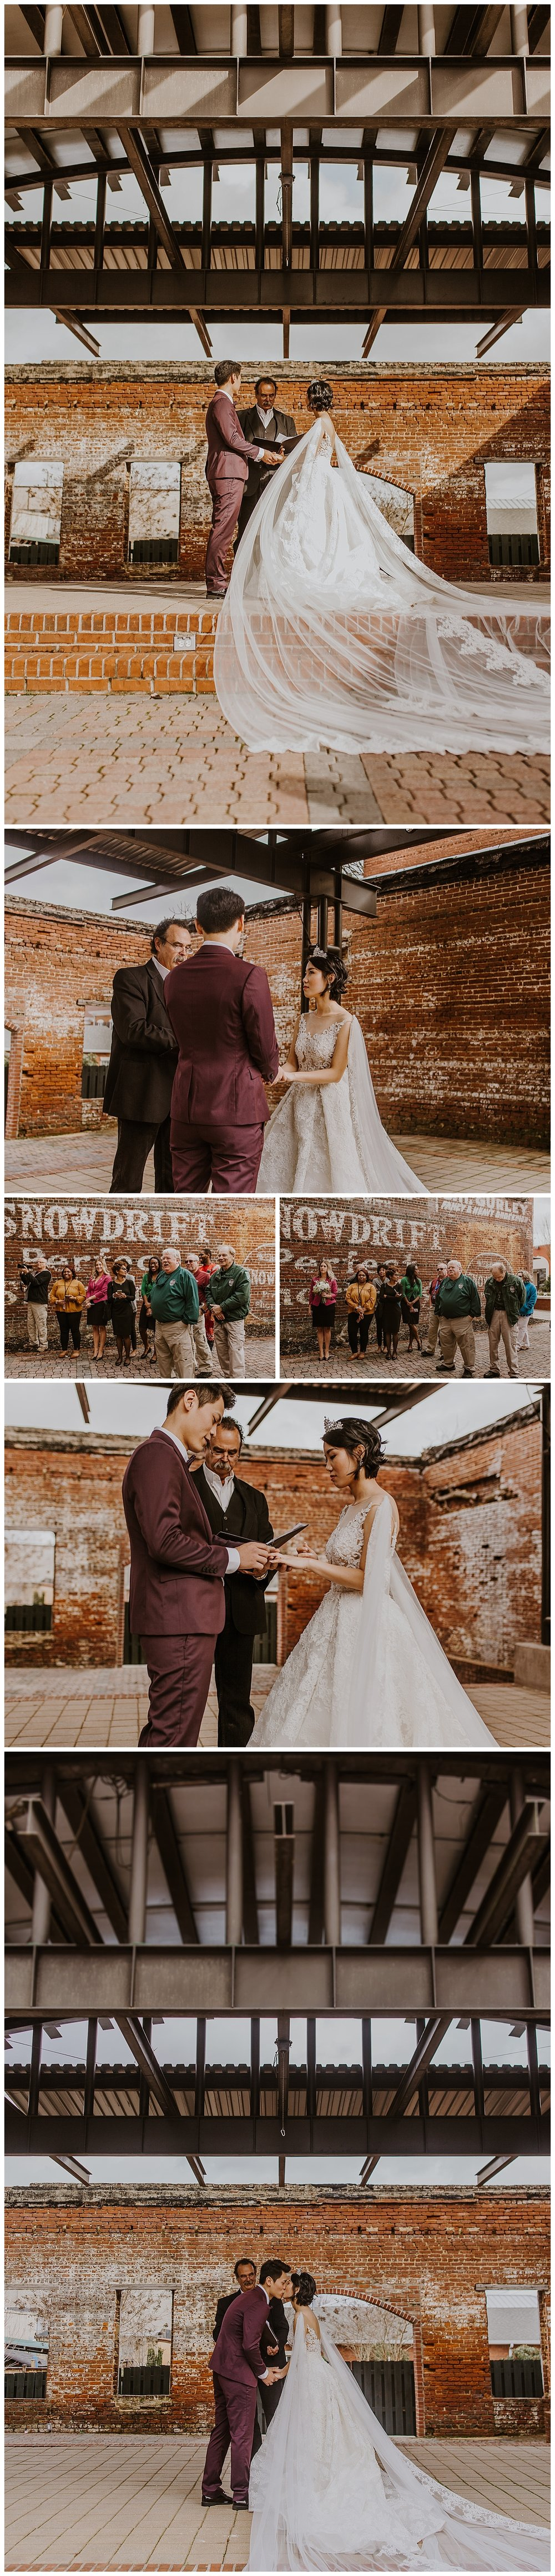 DOUGLASVILLE_GEORGIA_WEDDING_PHOTOGRAPHER_ELOPEMENT_ATLANTA_NATURAL_LIGHT_MOODY_SUNNY_0006.jpg